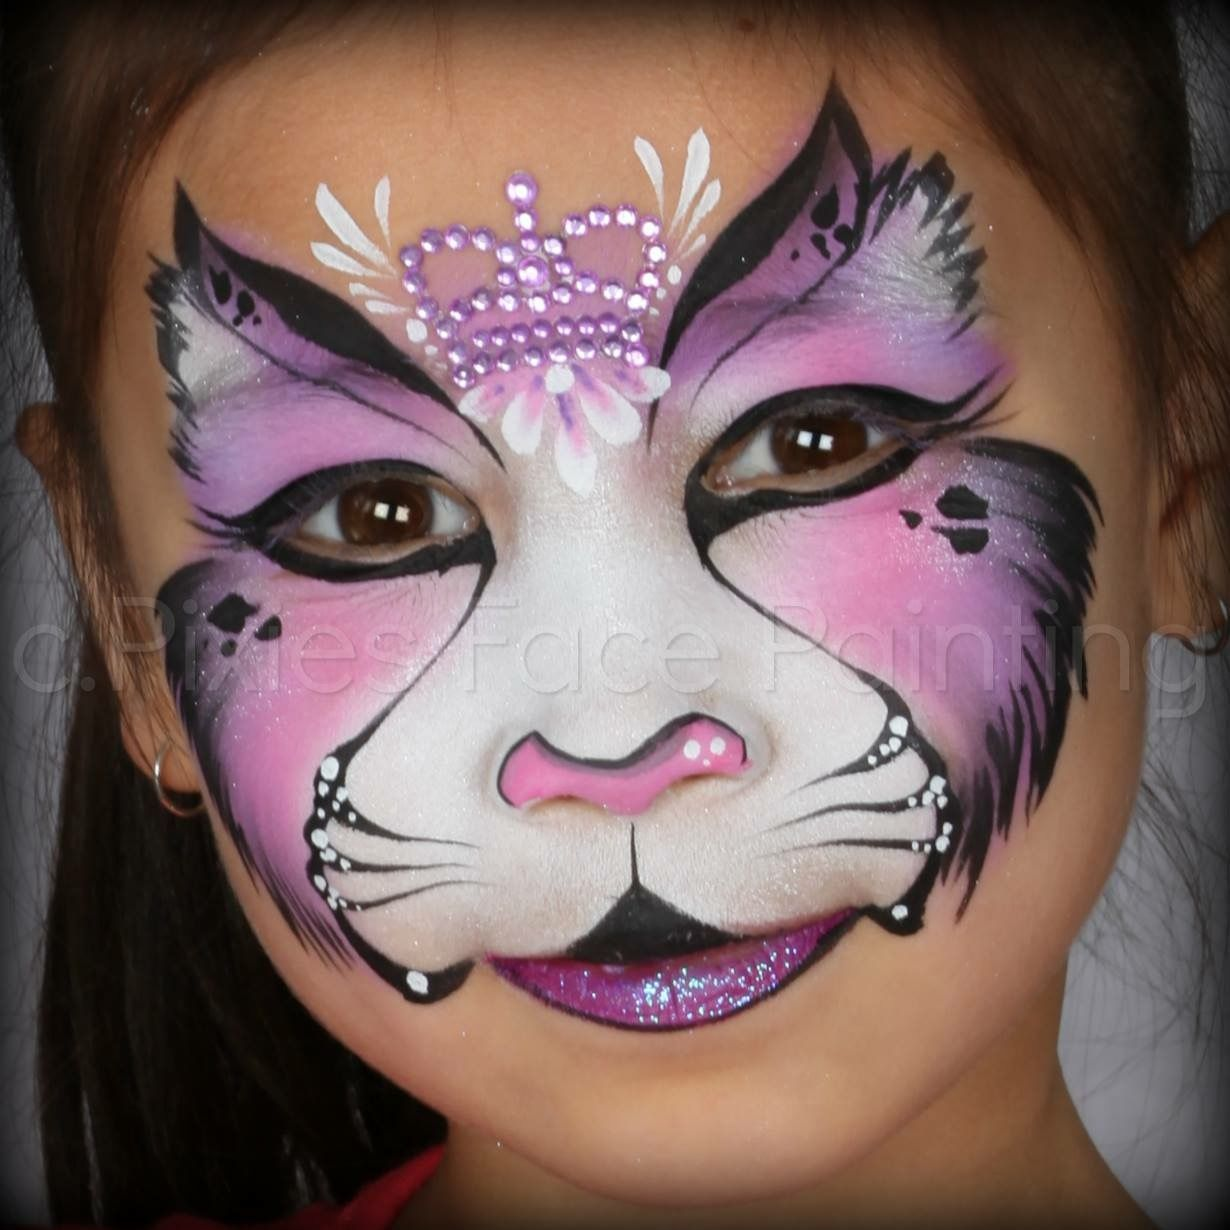 Princess kitty face painting pinterest face painting - Princesse kitty ...